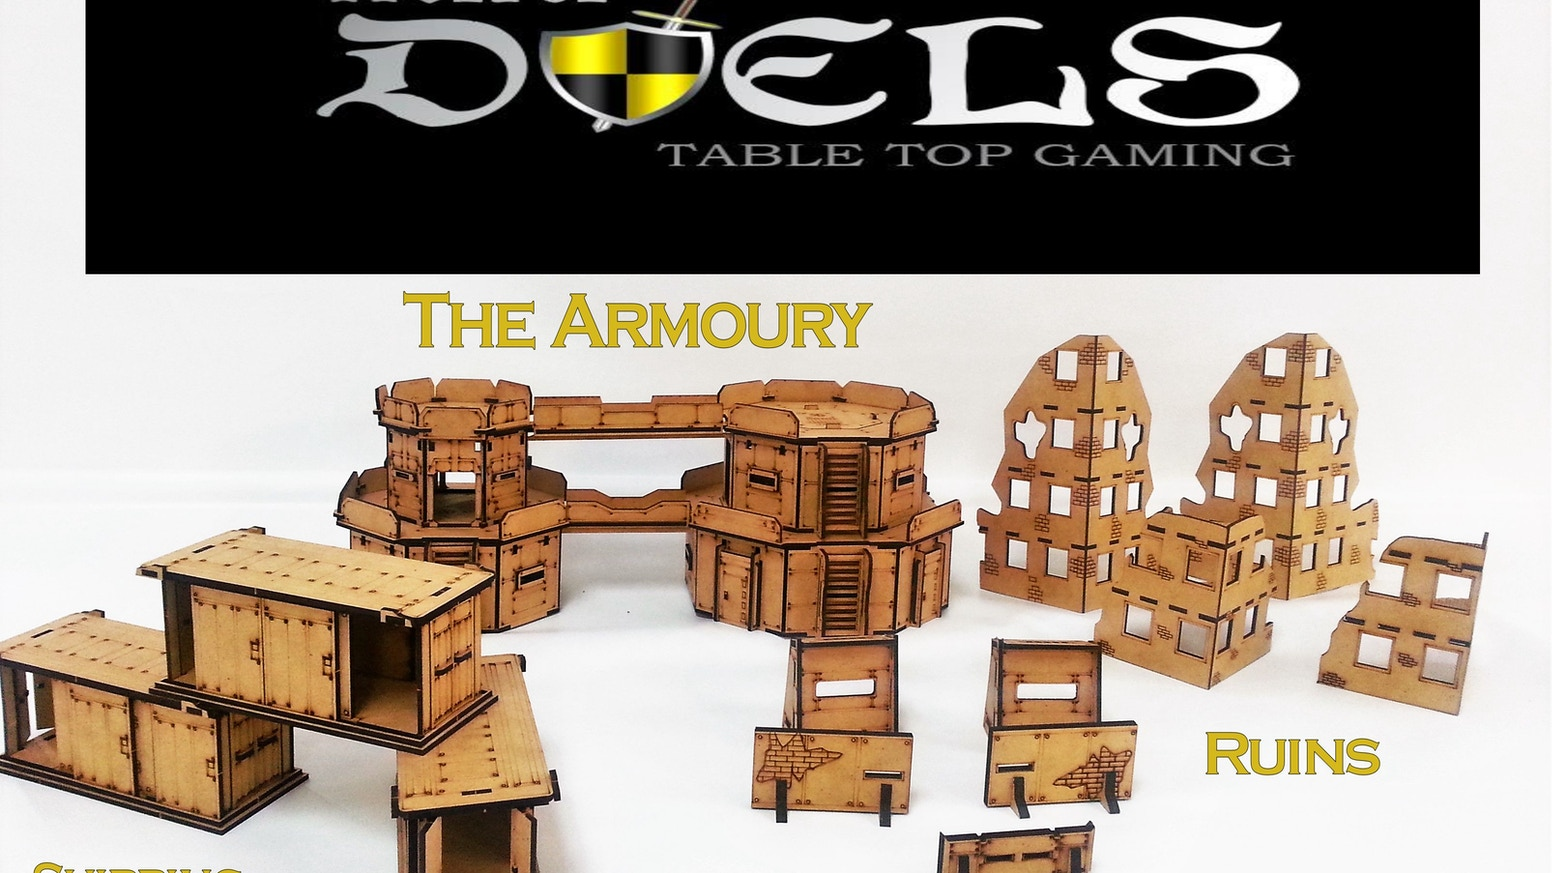 If you missed this Kickstarter, head over to Miniduels.com for more great items